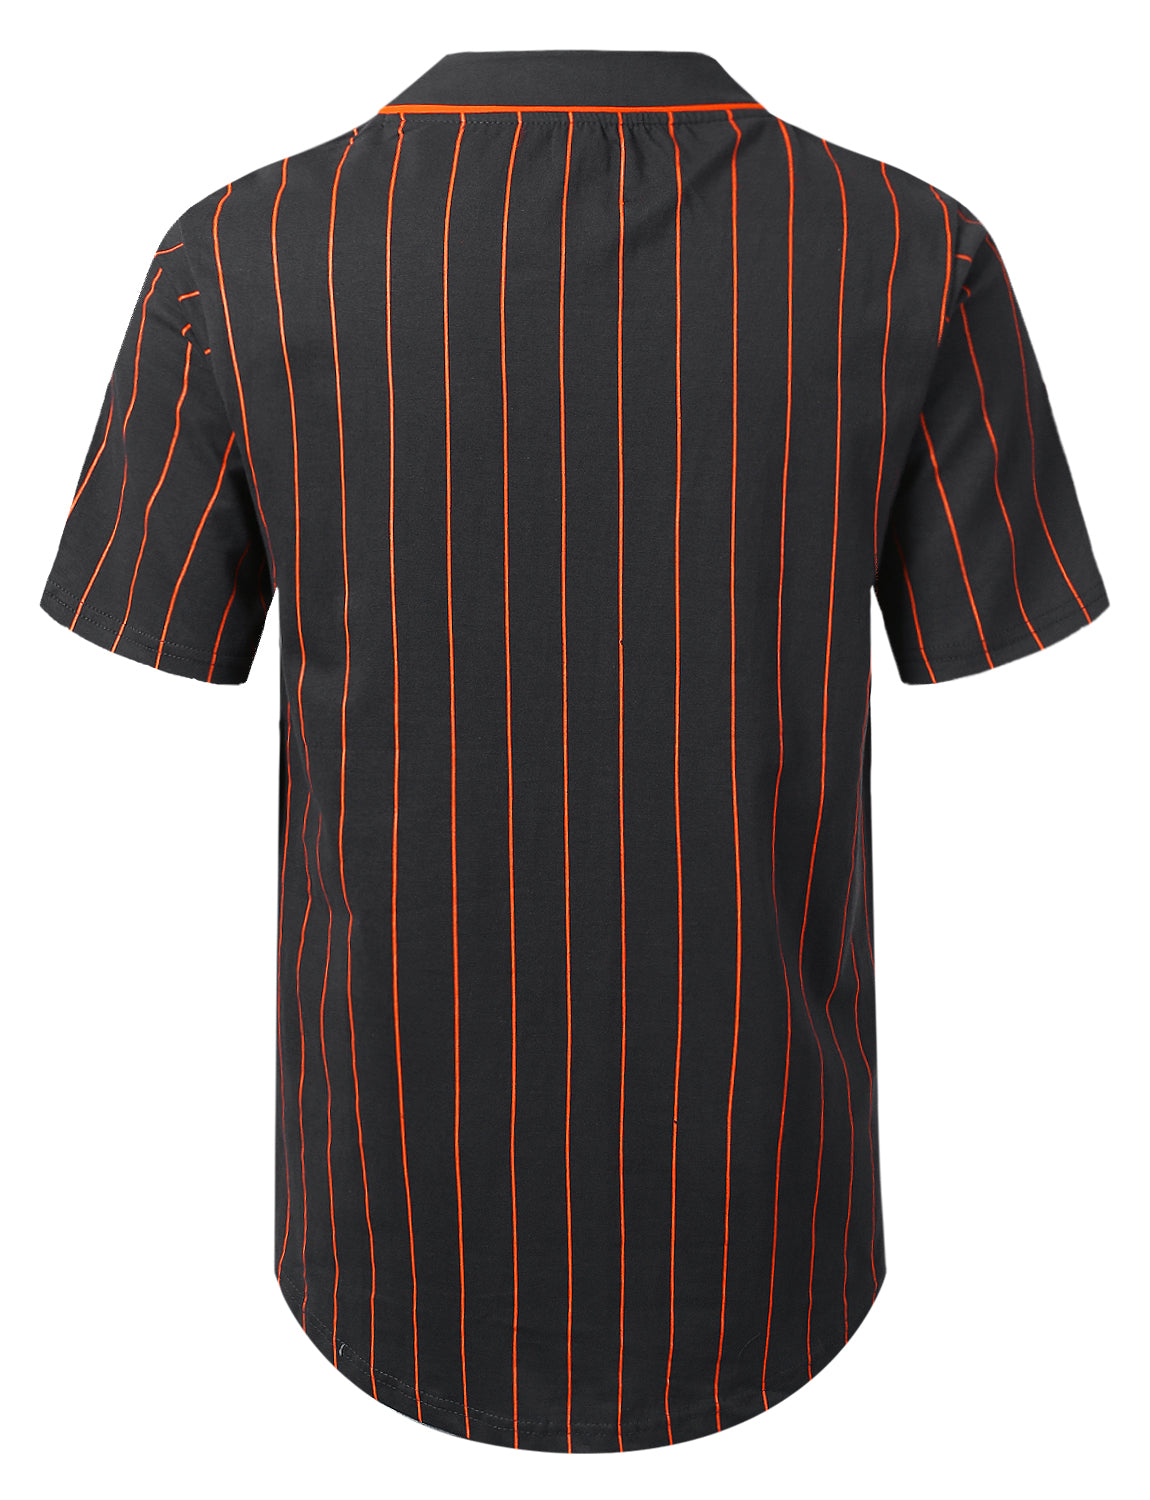 GREY Striped Baseball Jersey Shirt - URBANCREWS